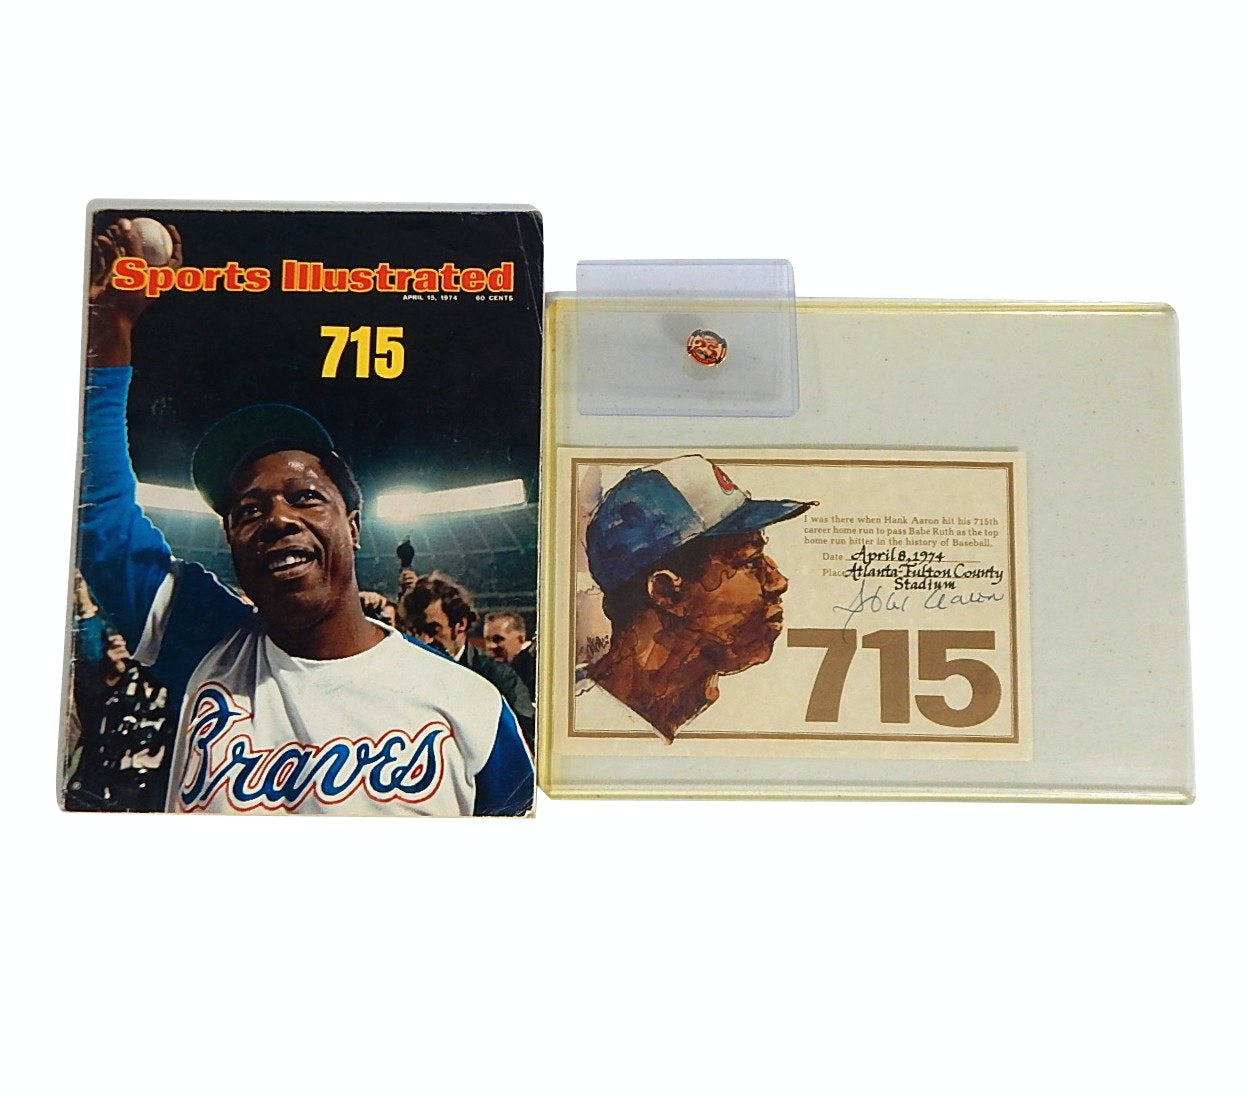 Hank Aaron 1974 Sports Illustrated Cover Magazine and Signed 715 Certificate